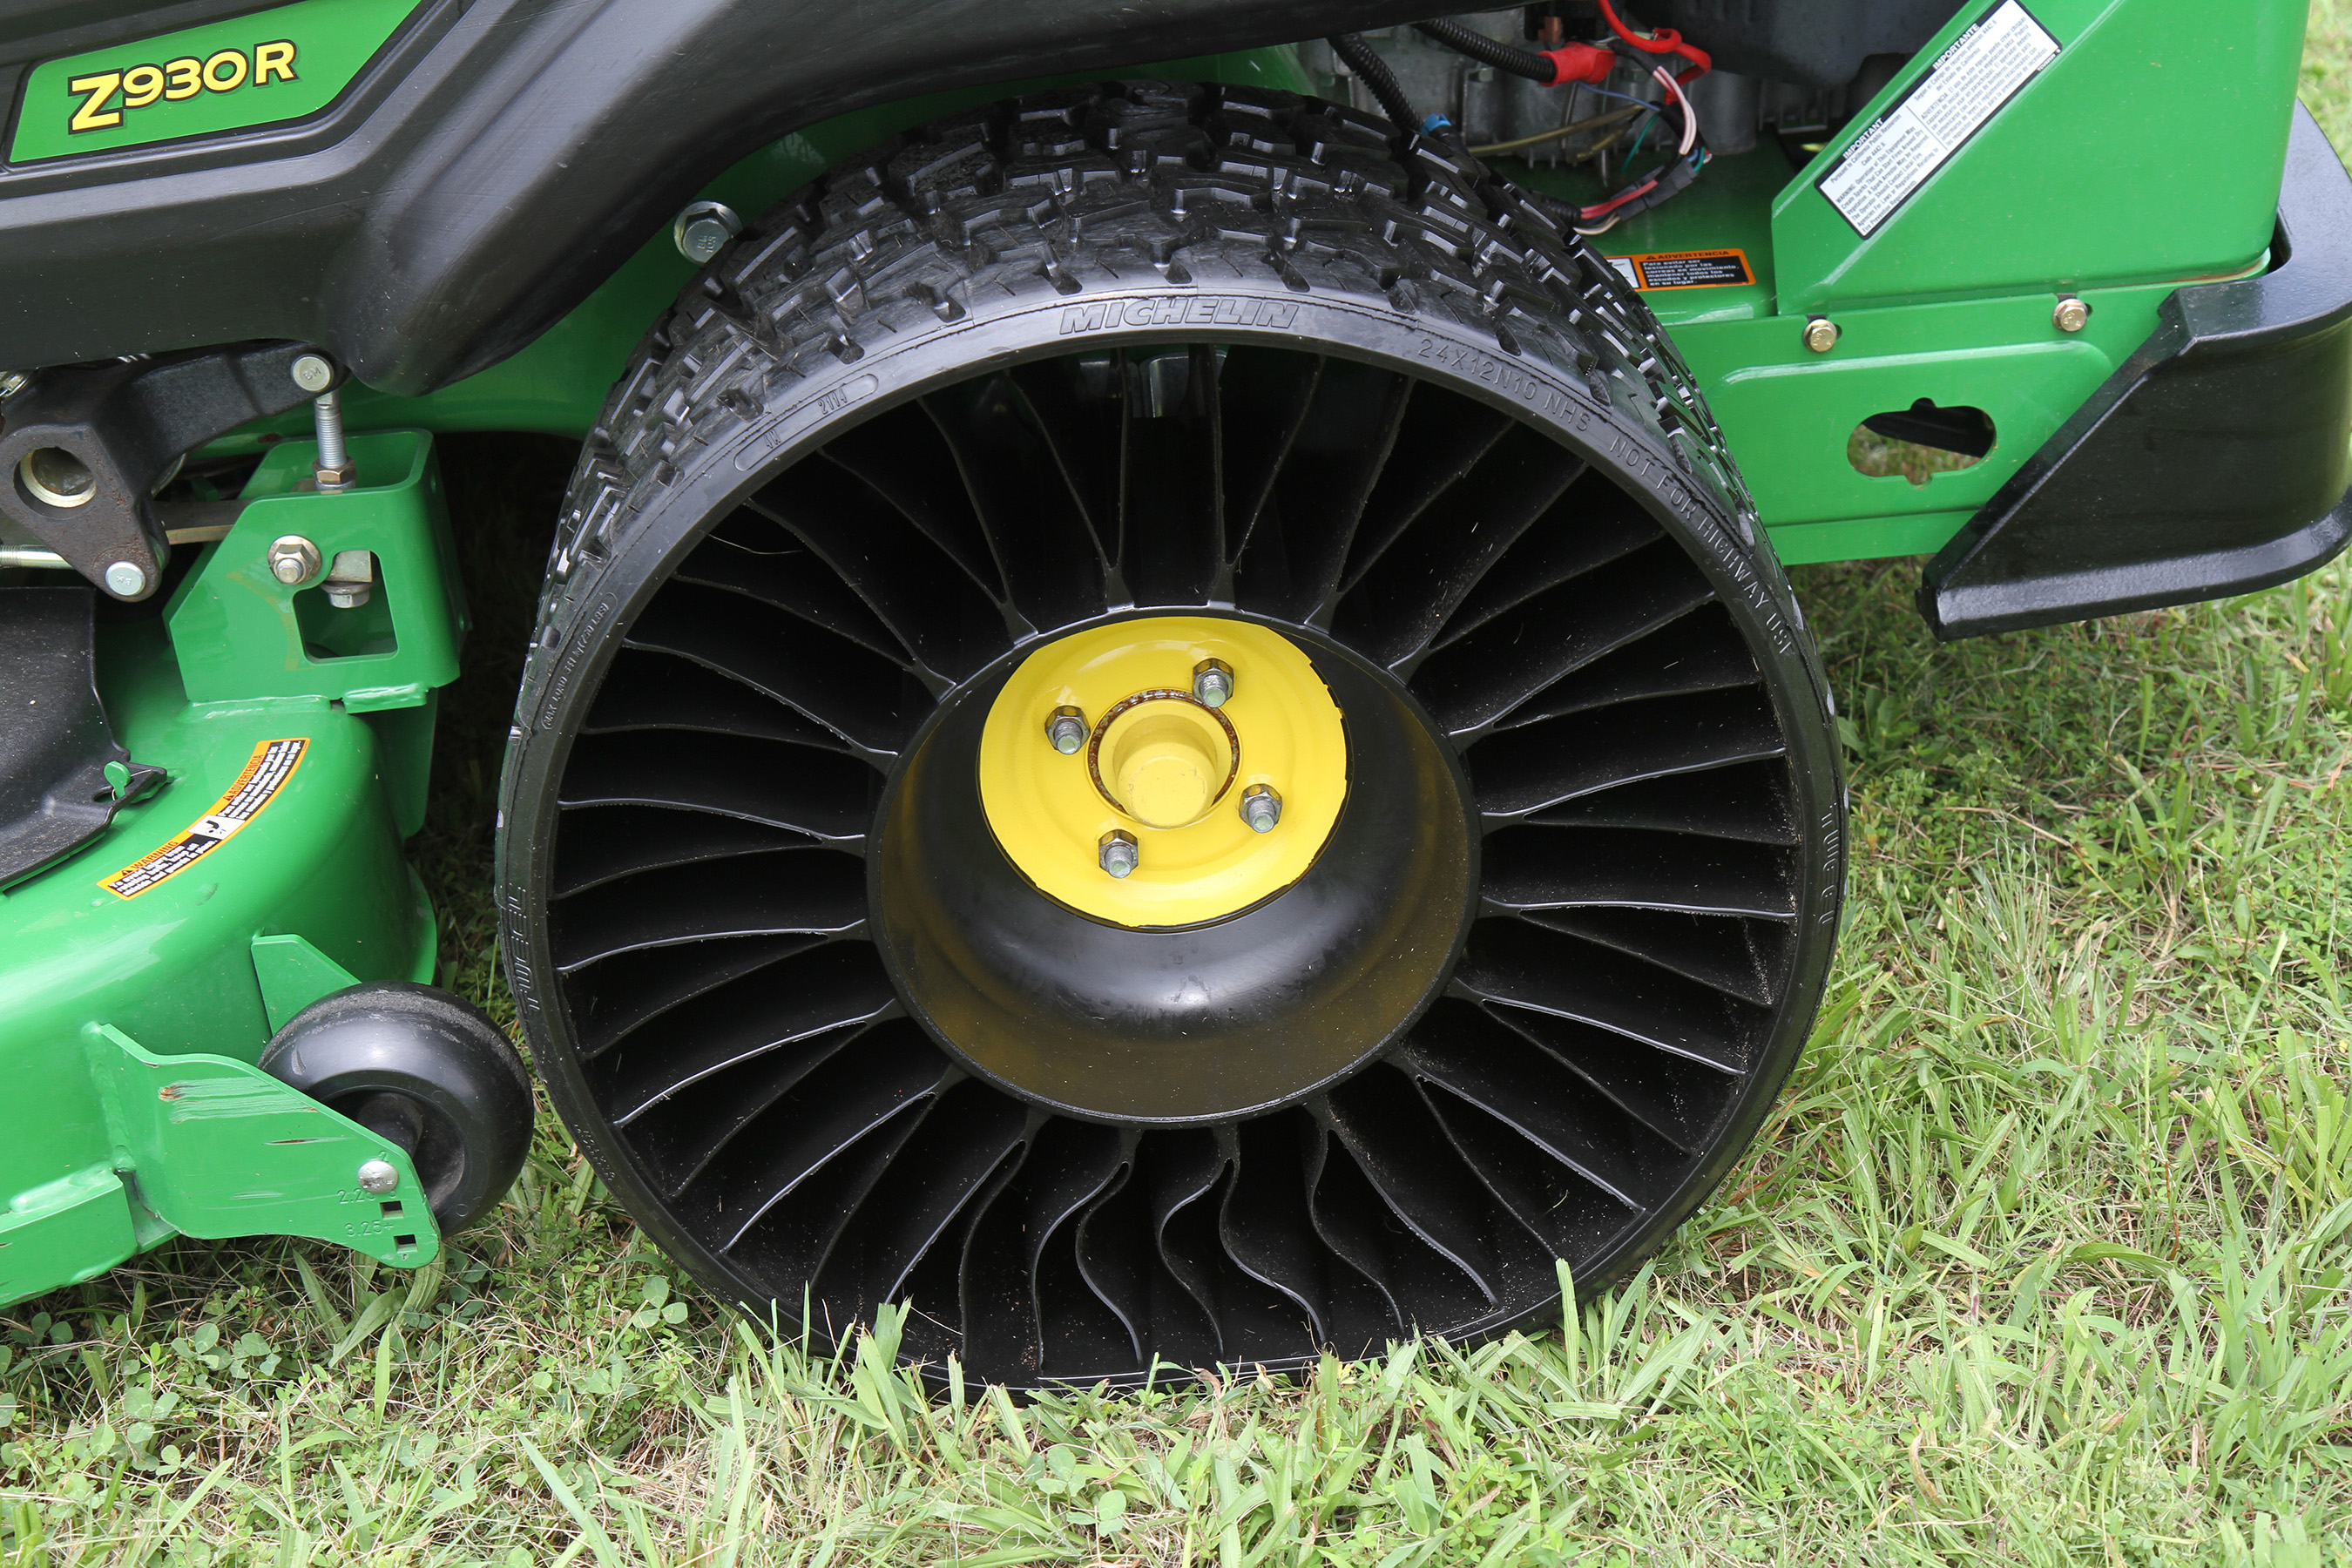 This award winning technology of the michelin x tweel turf airless radial tire is available for landscape professionals who normally experience expensive